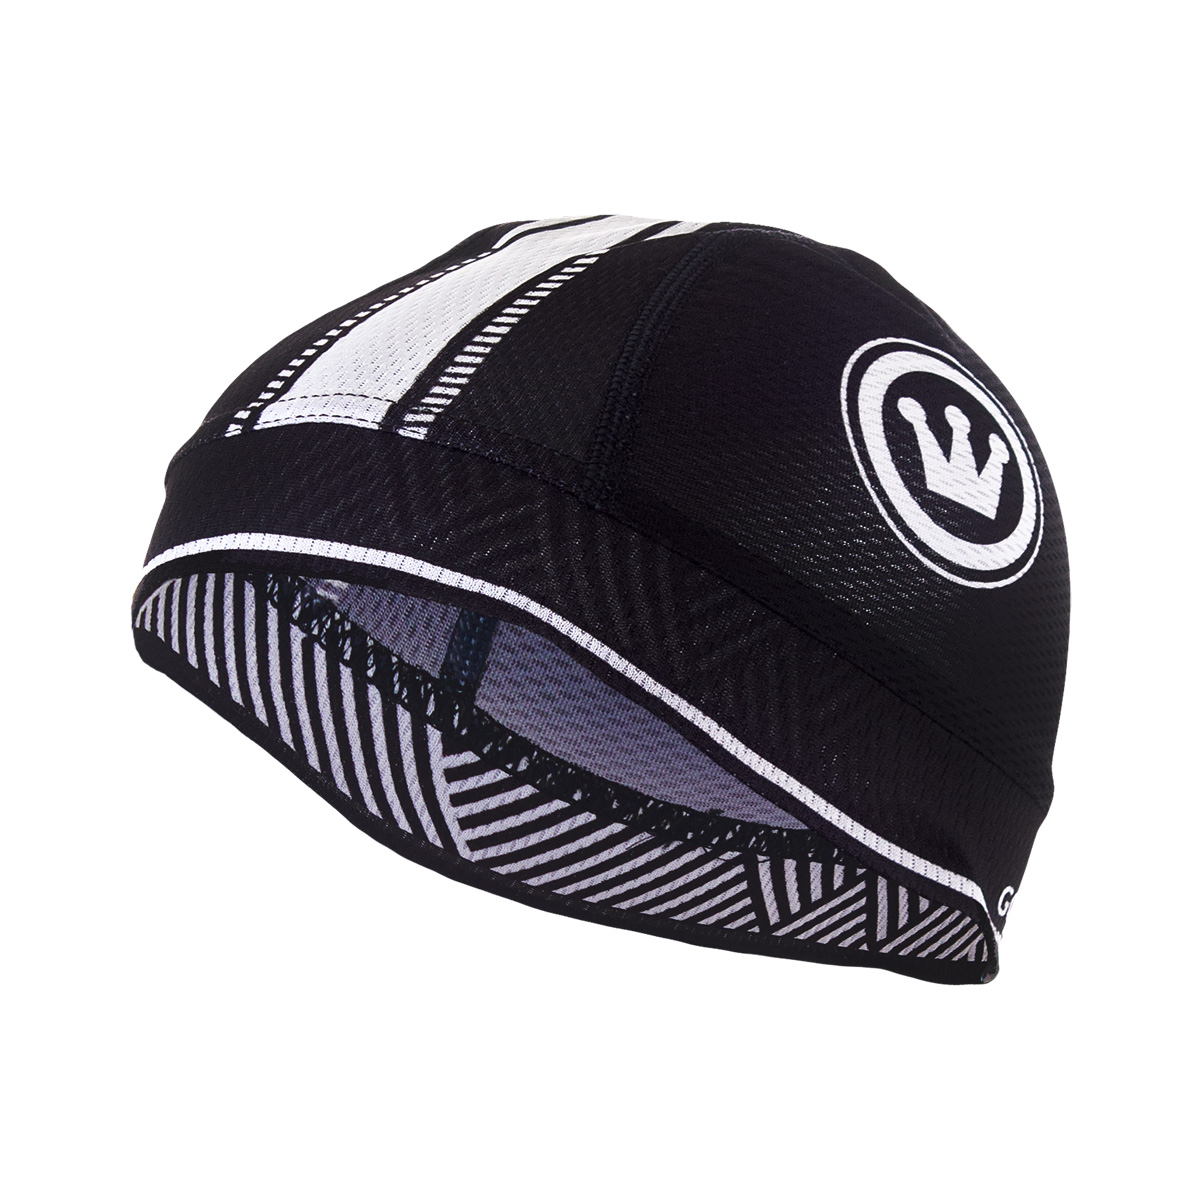 Canari Cyclewear 2016/17 Shift UPF Cycling Beanie - 7128